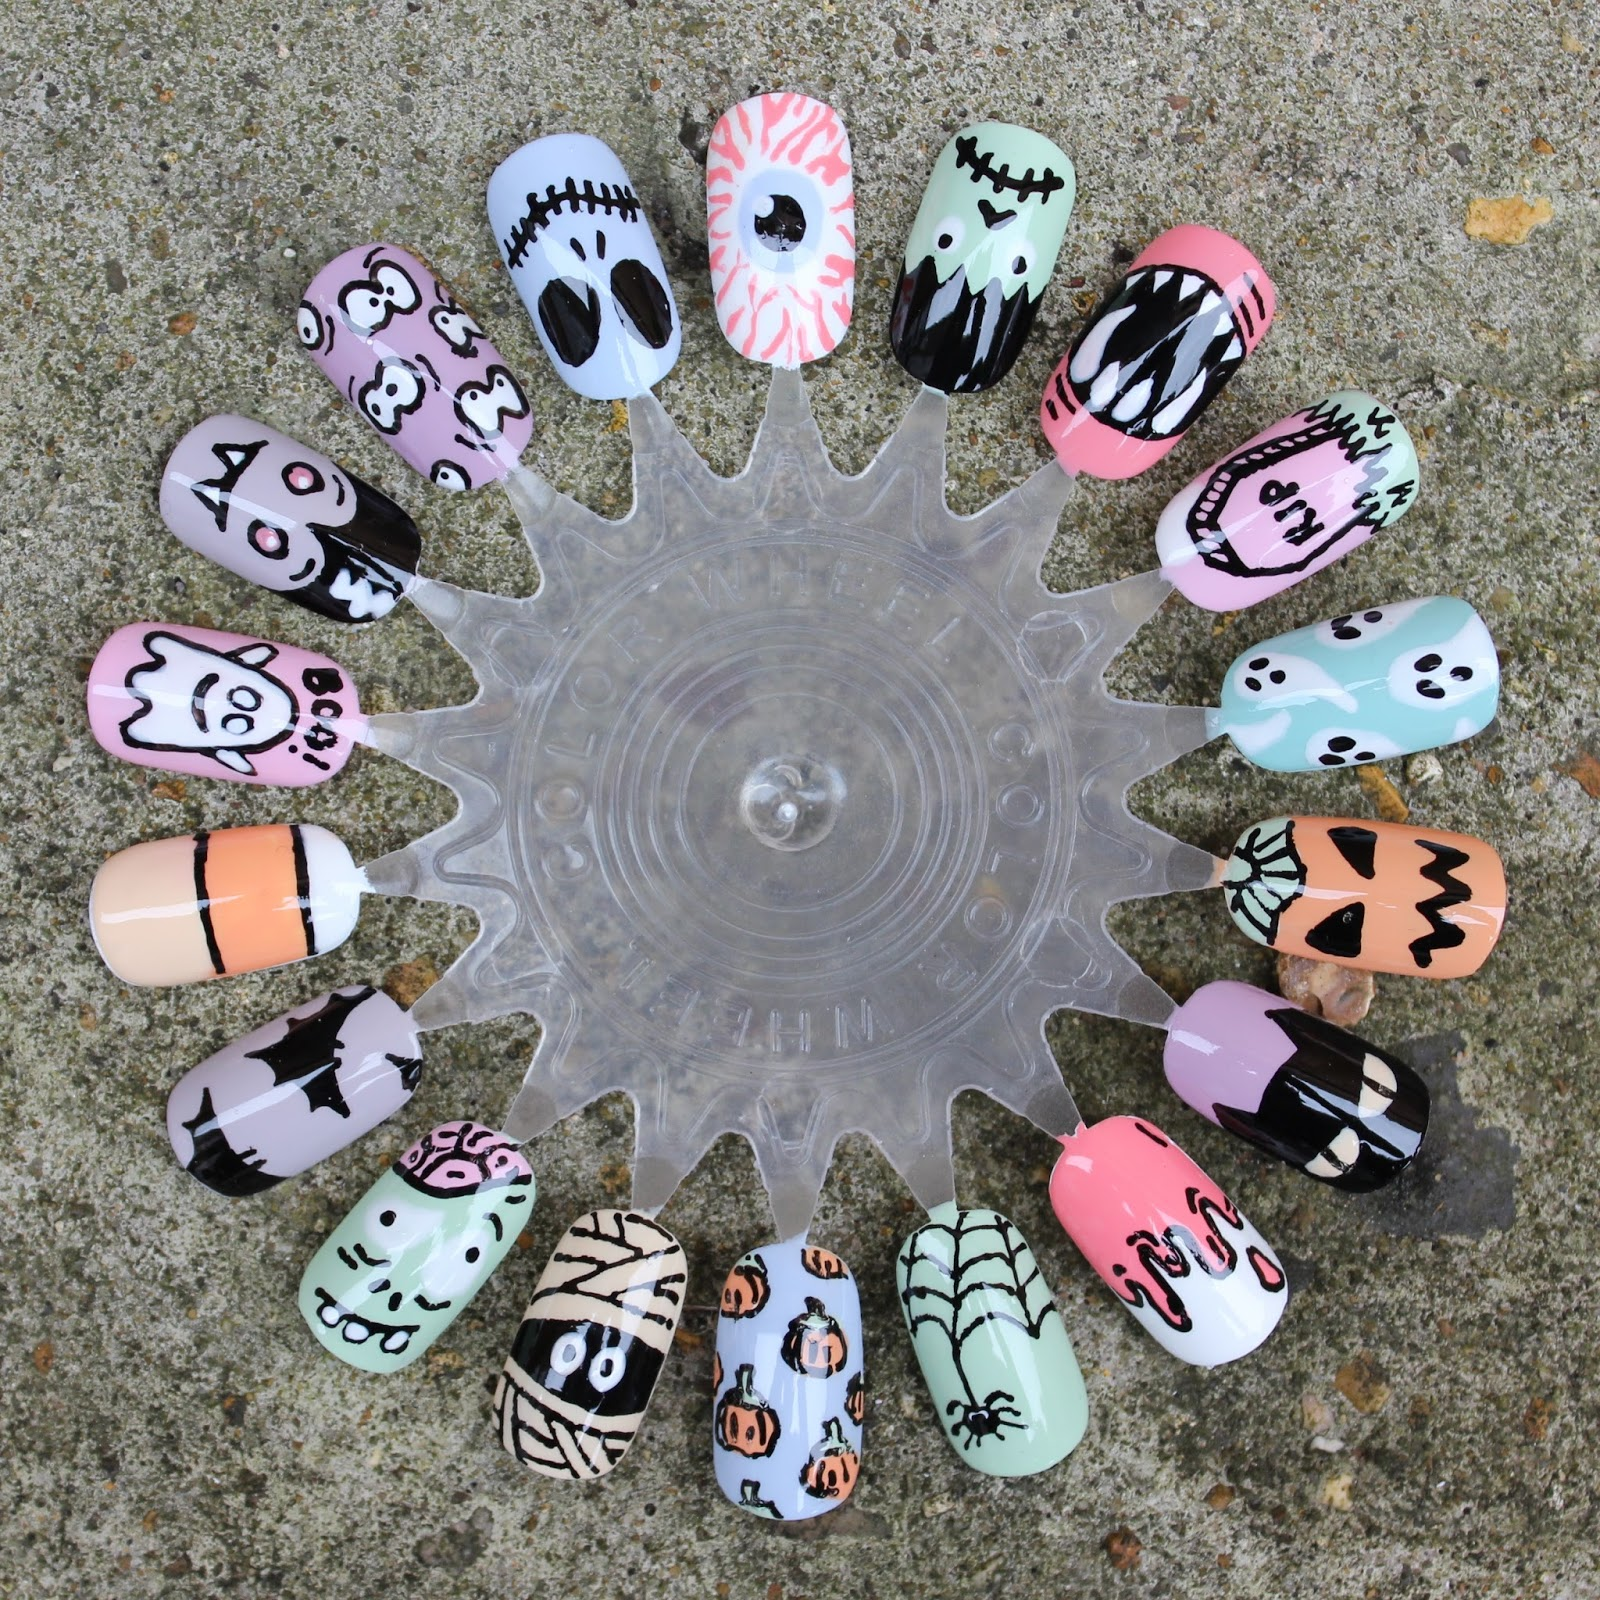 Dahlia Nails: 18 Fun Halloween Nail Art Ideas